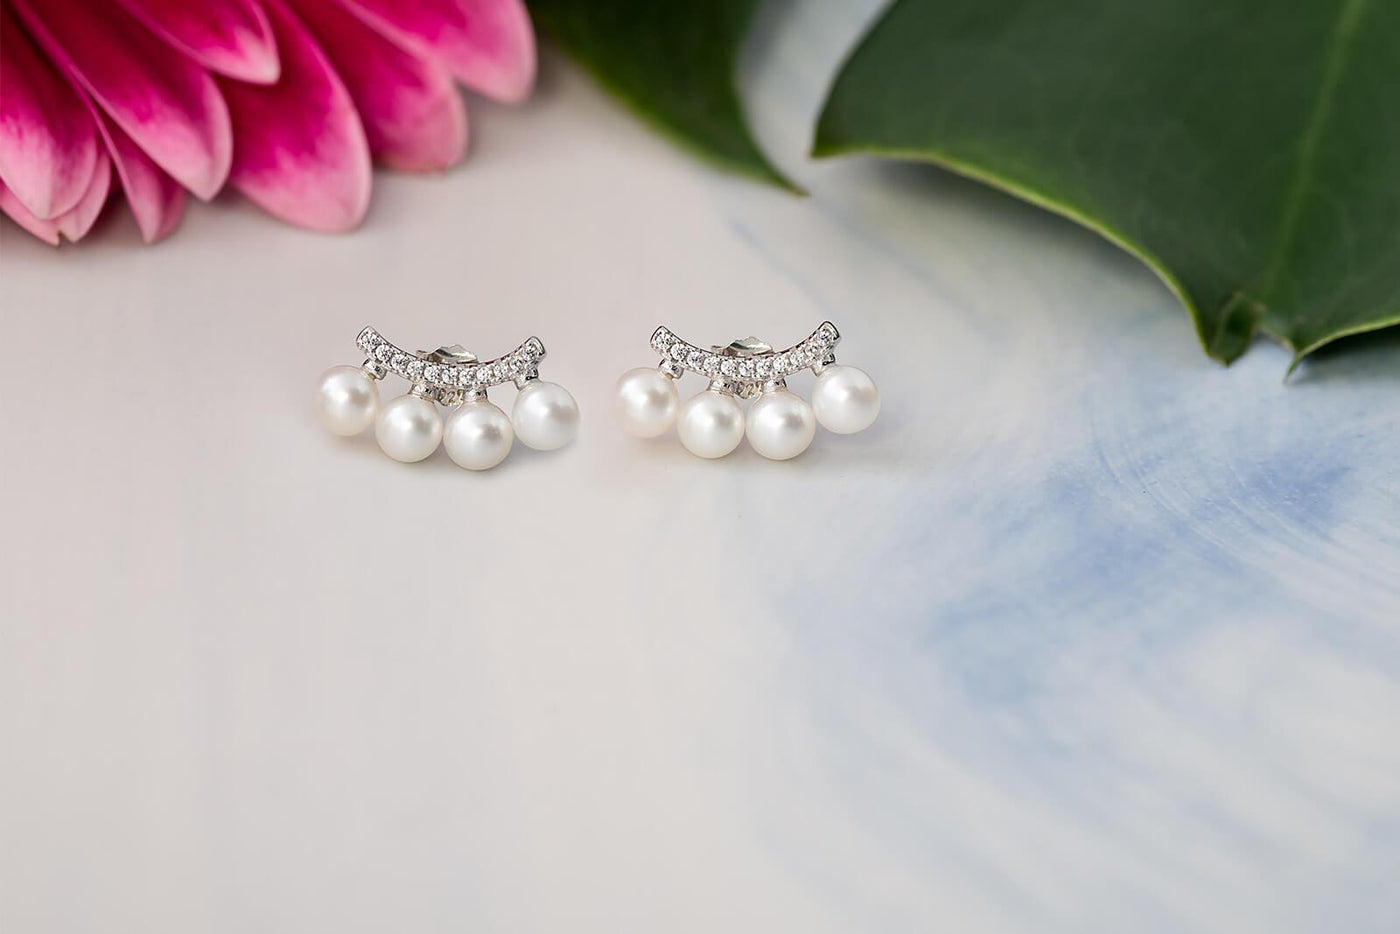 gift woman classic MOTHERS DAY  a gift free Pearl earrings new bridesmaid gift perfect condition